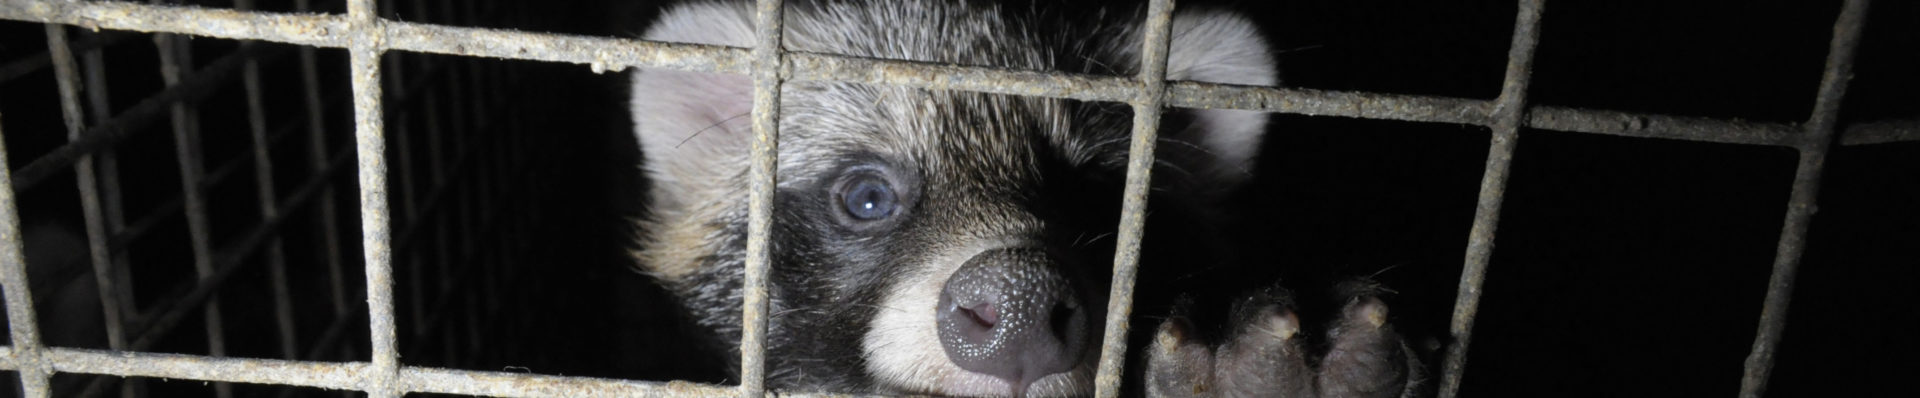 Bulgarian politicians propose bill to end fur farming